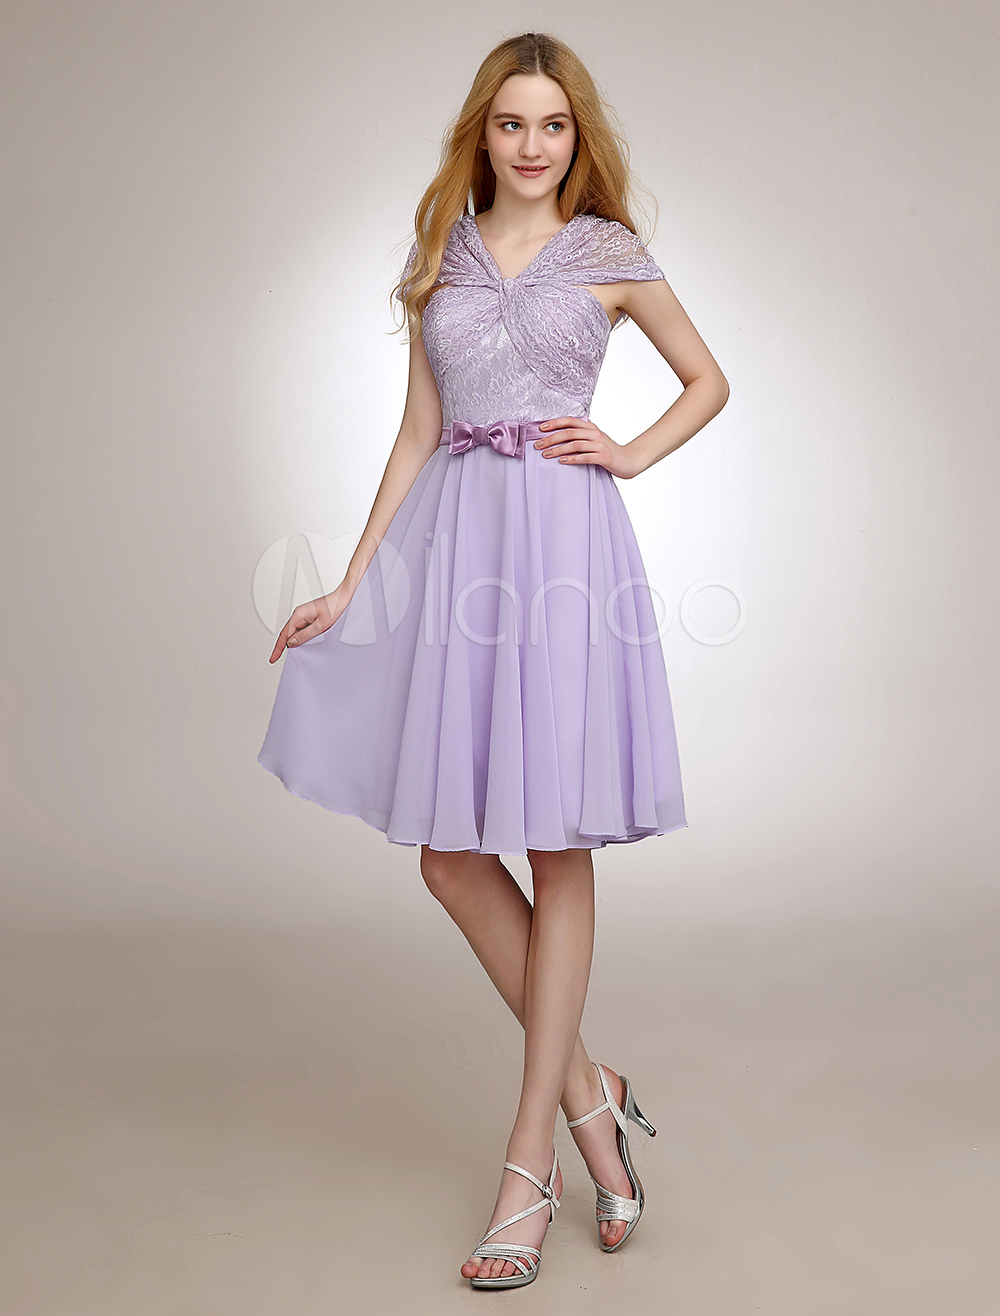 Short Lace Bridesmaid Dress With Off-The-Shoulder & Bow Decor